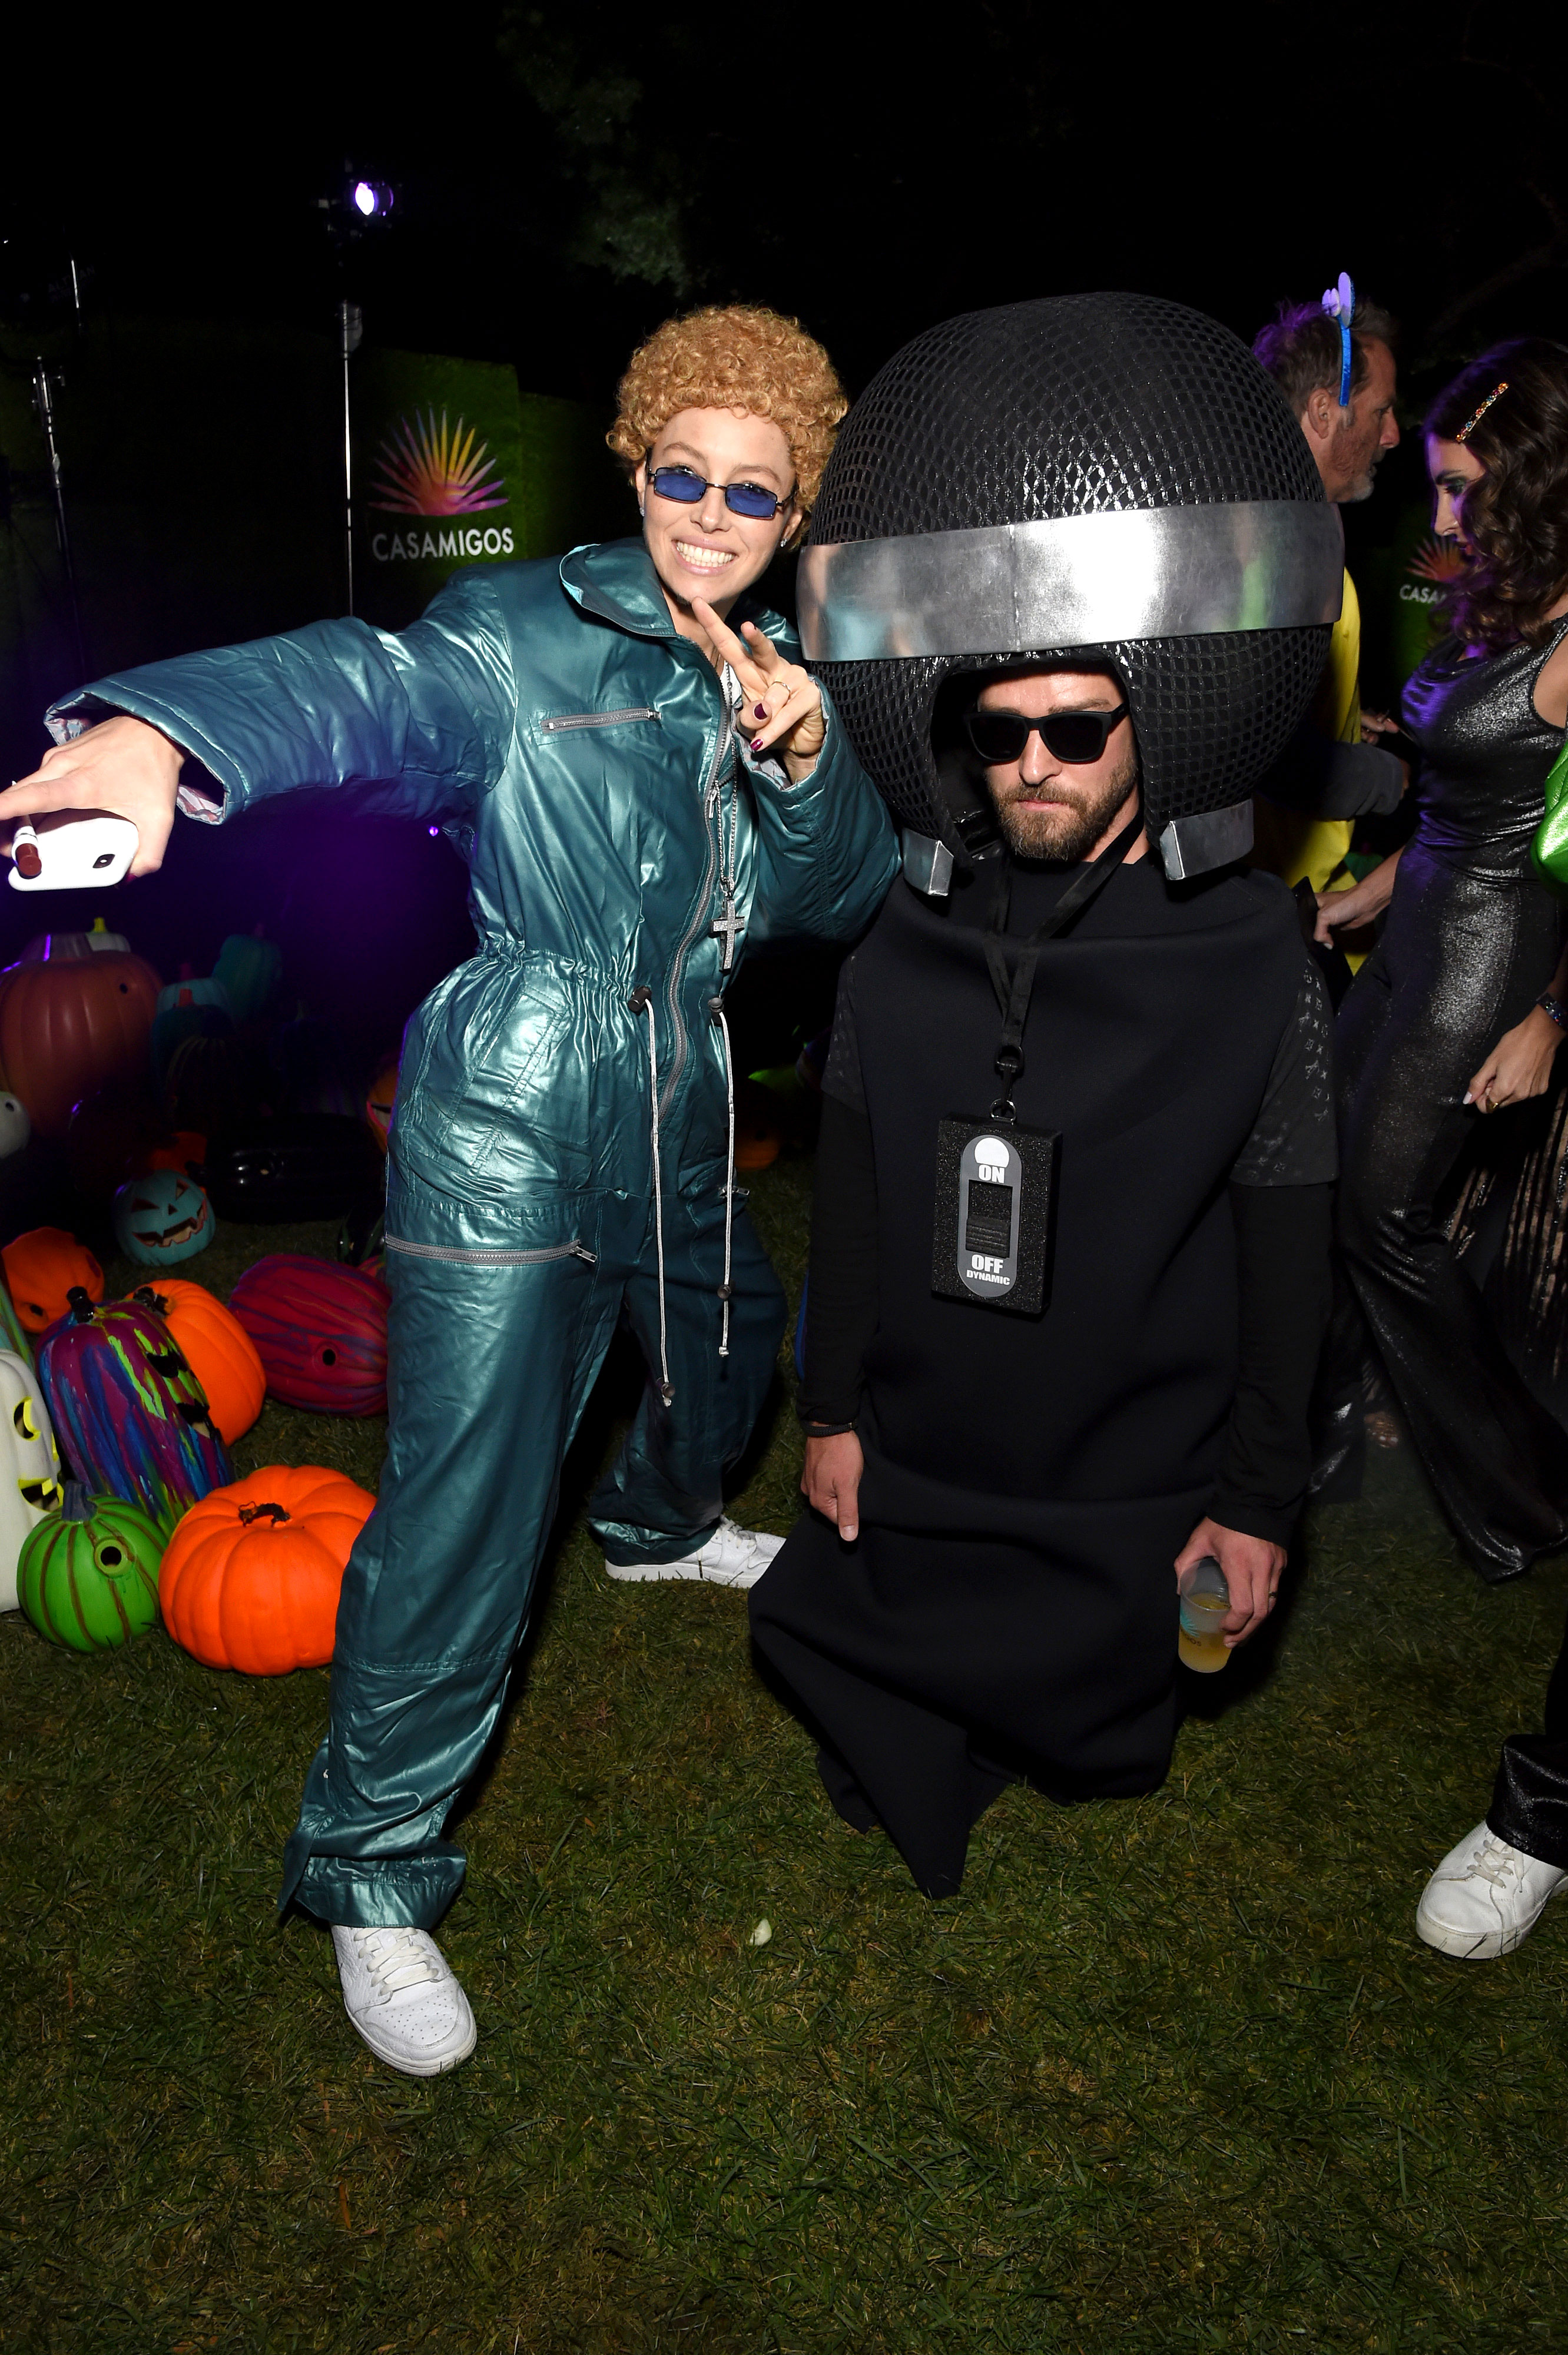 Celebs Dressing Up as Other Celebs for Halloween